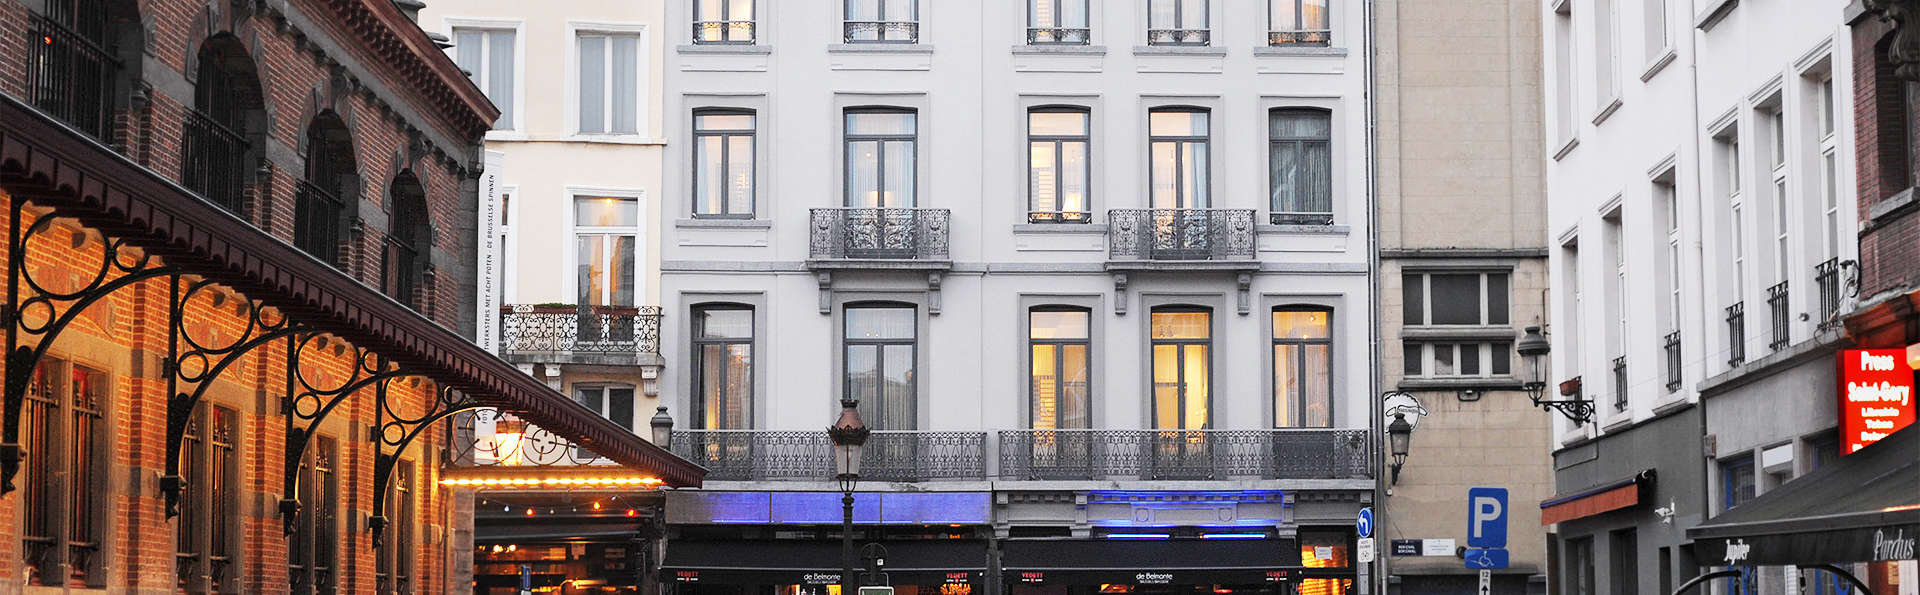 Boutique Hôtel Saint-Géry - EDIT_front.jpg